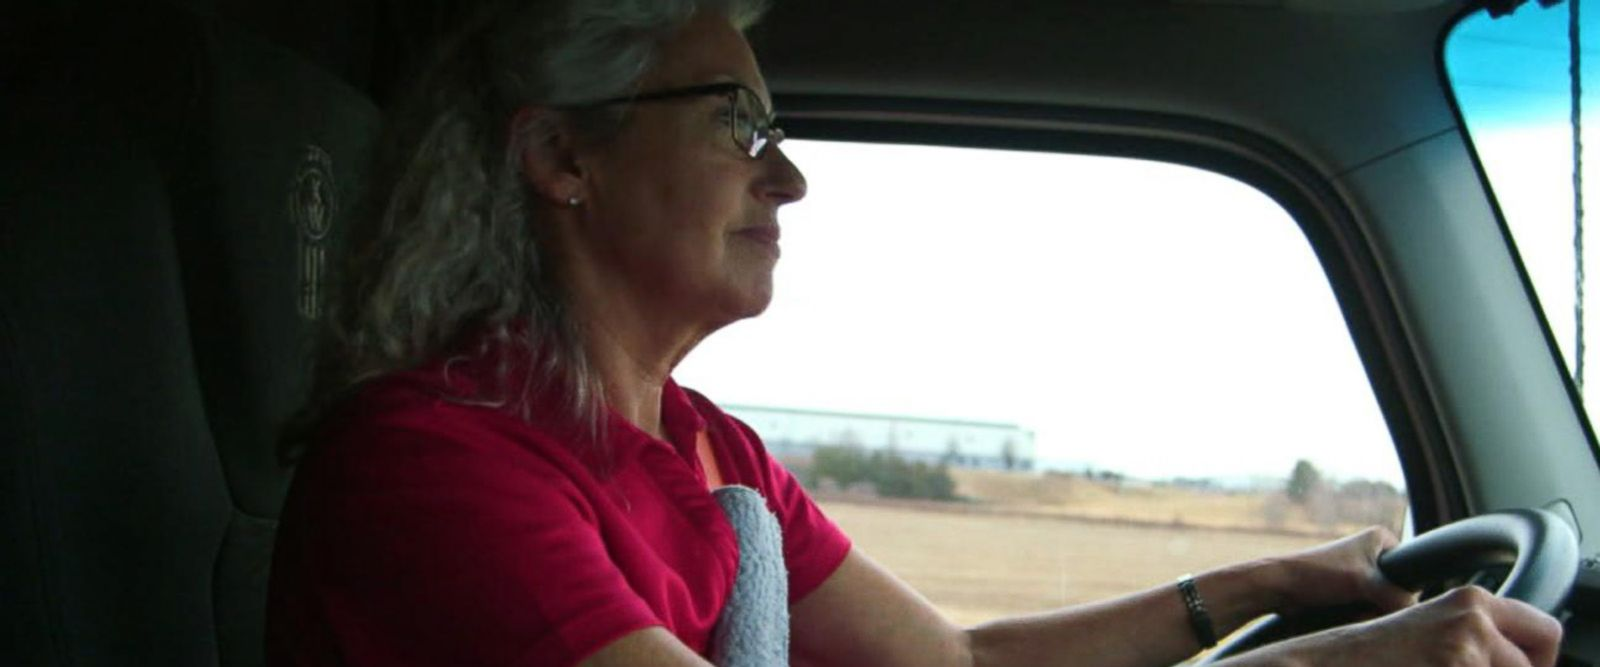 VIDEO: Female truckers navigate male-dominated industry: Part 3